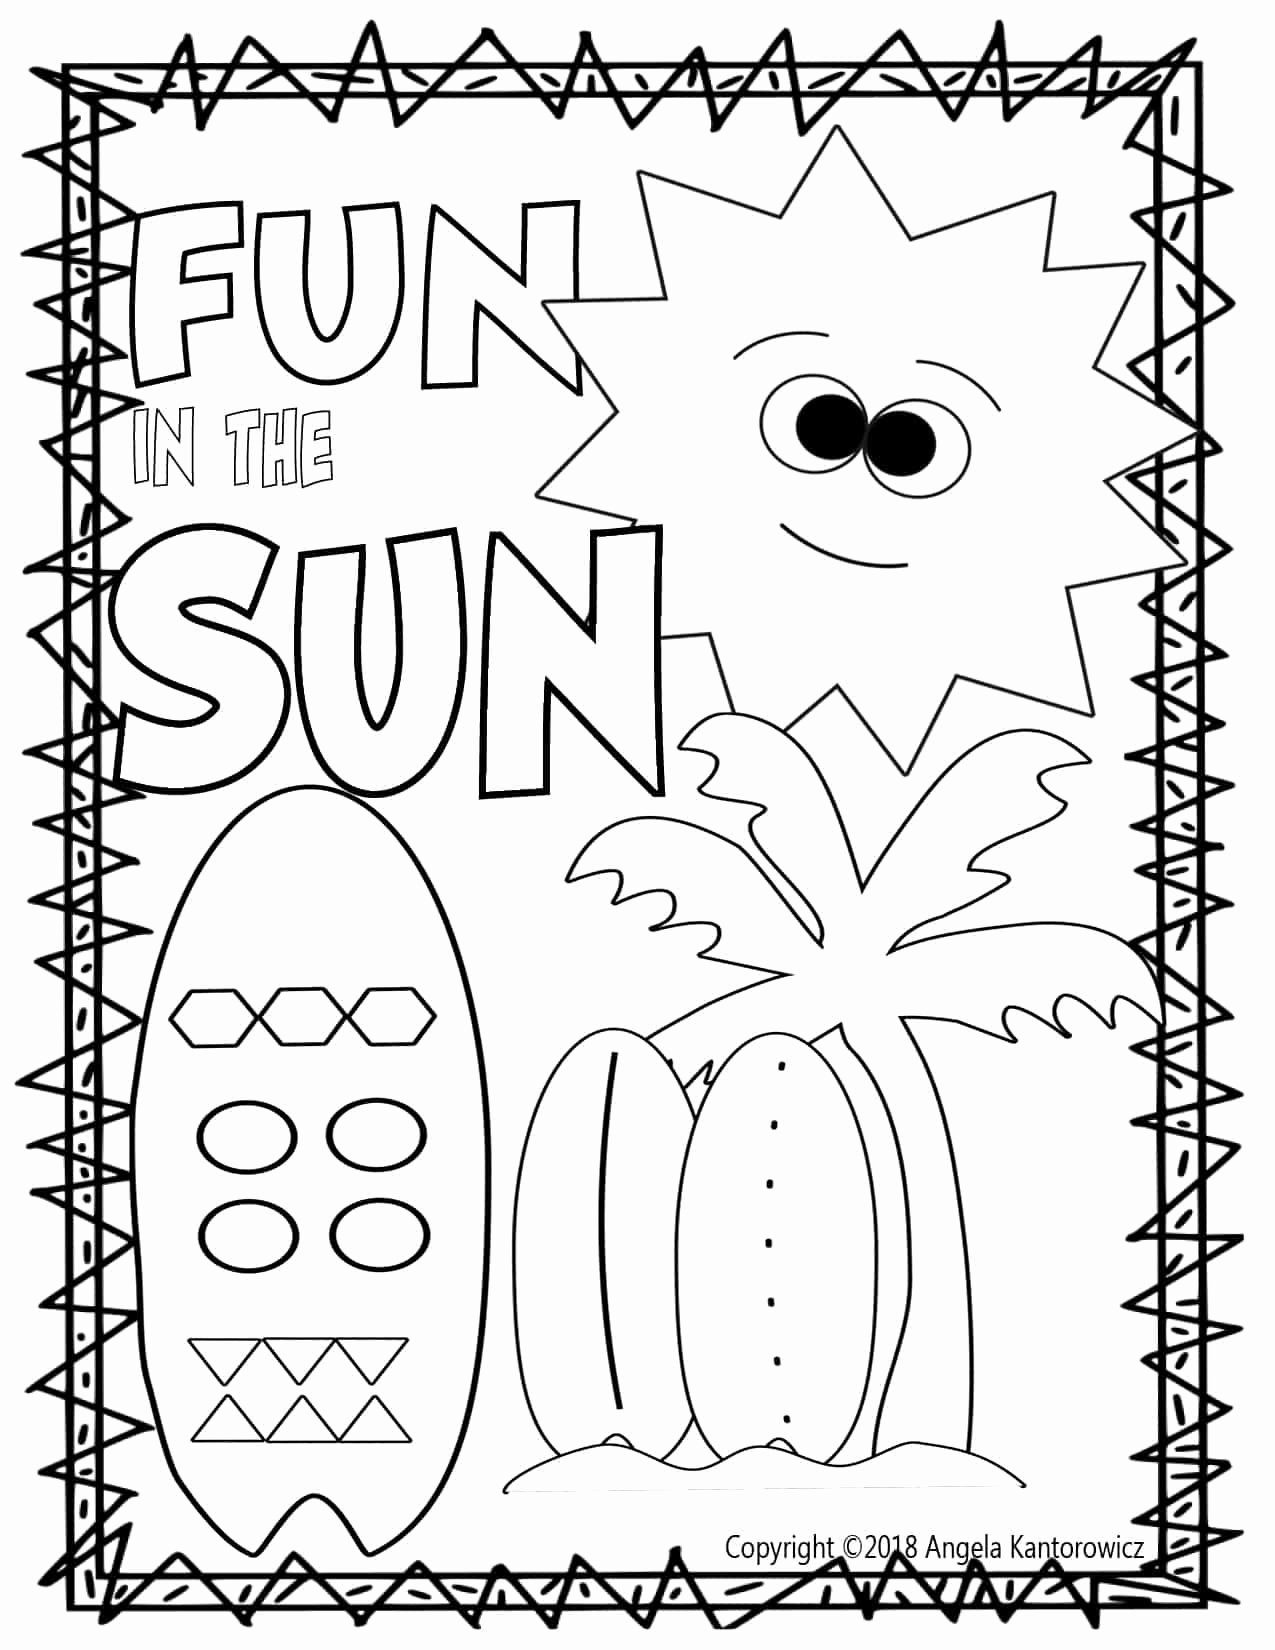 Summer Coloring Worksheets for Preschoolers top Coloring Free Summer Pages for Preschoolers Joshua and